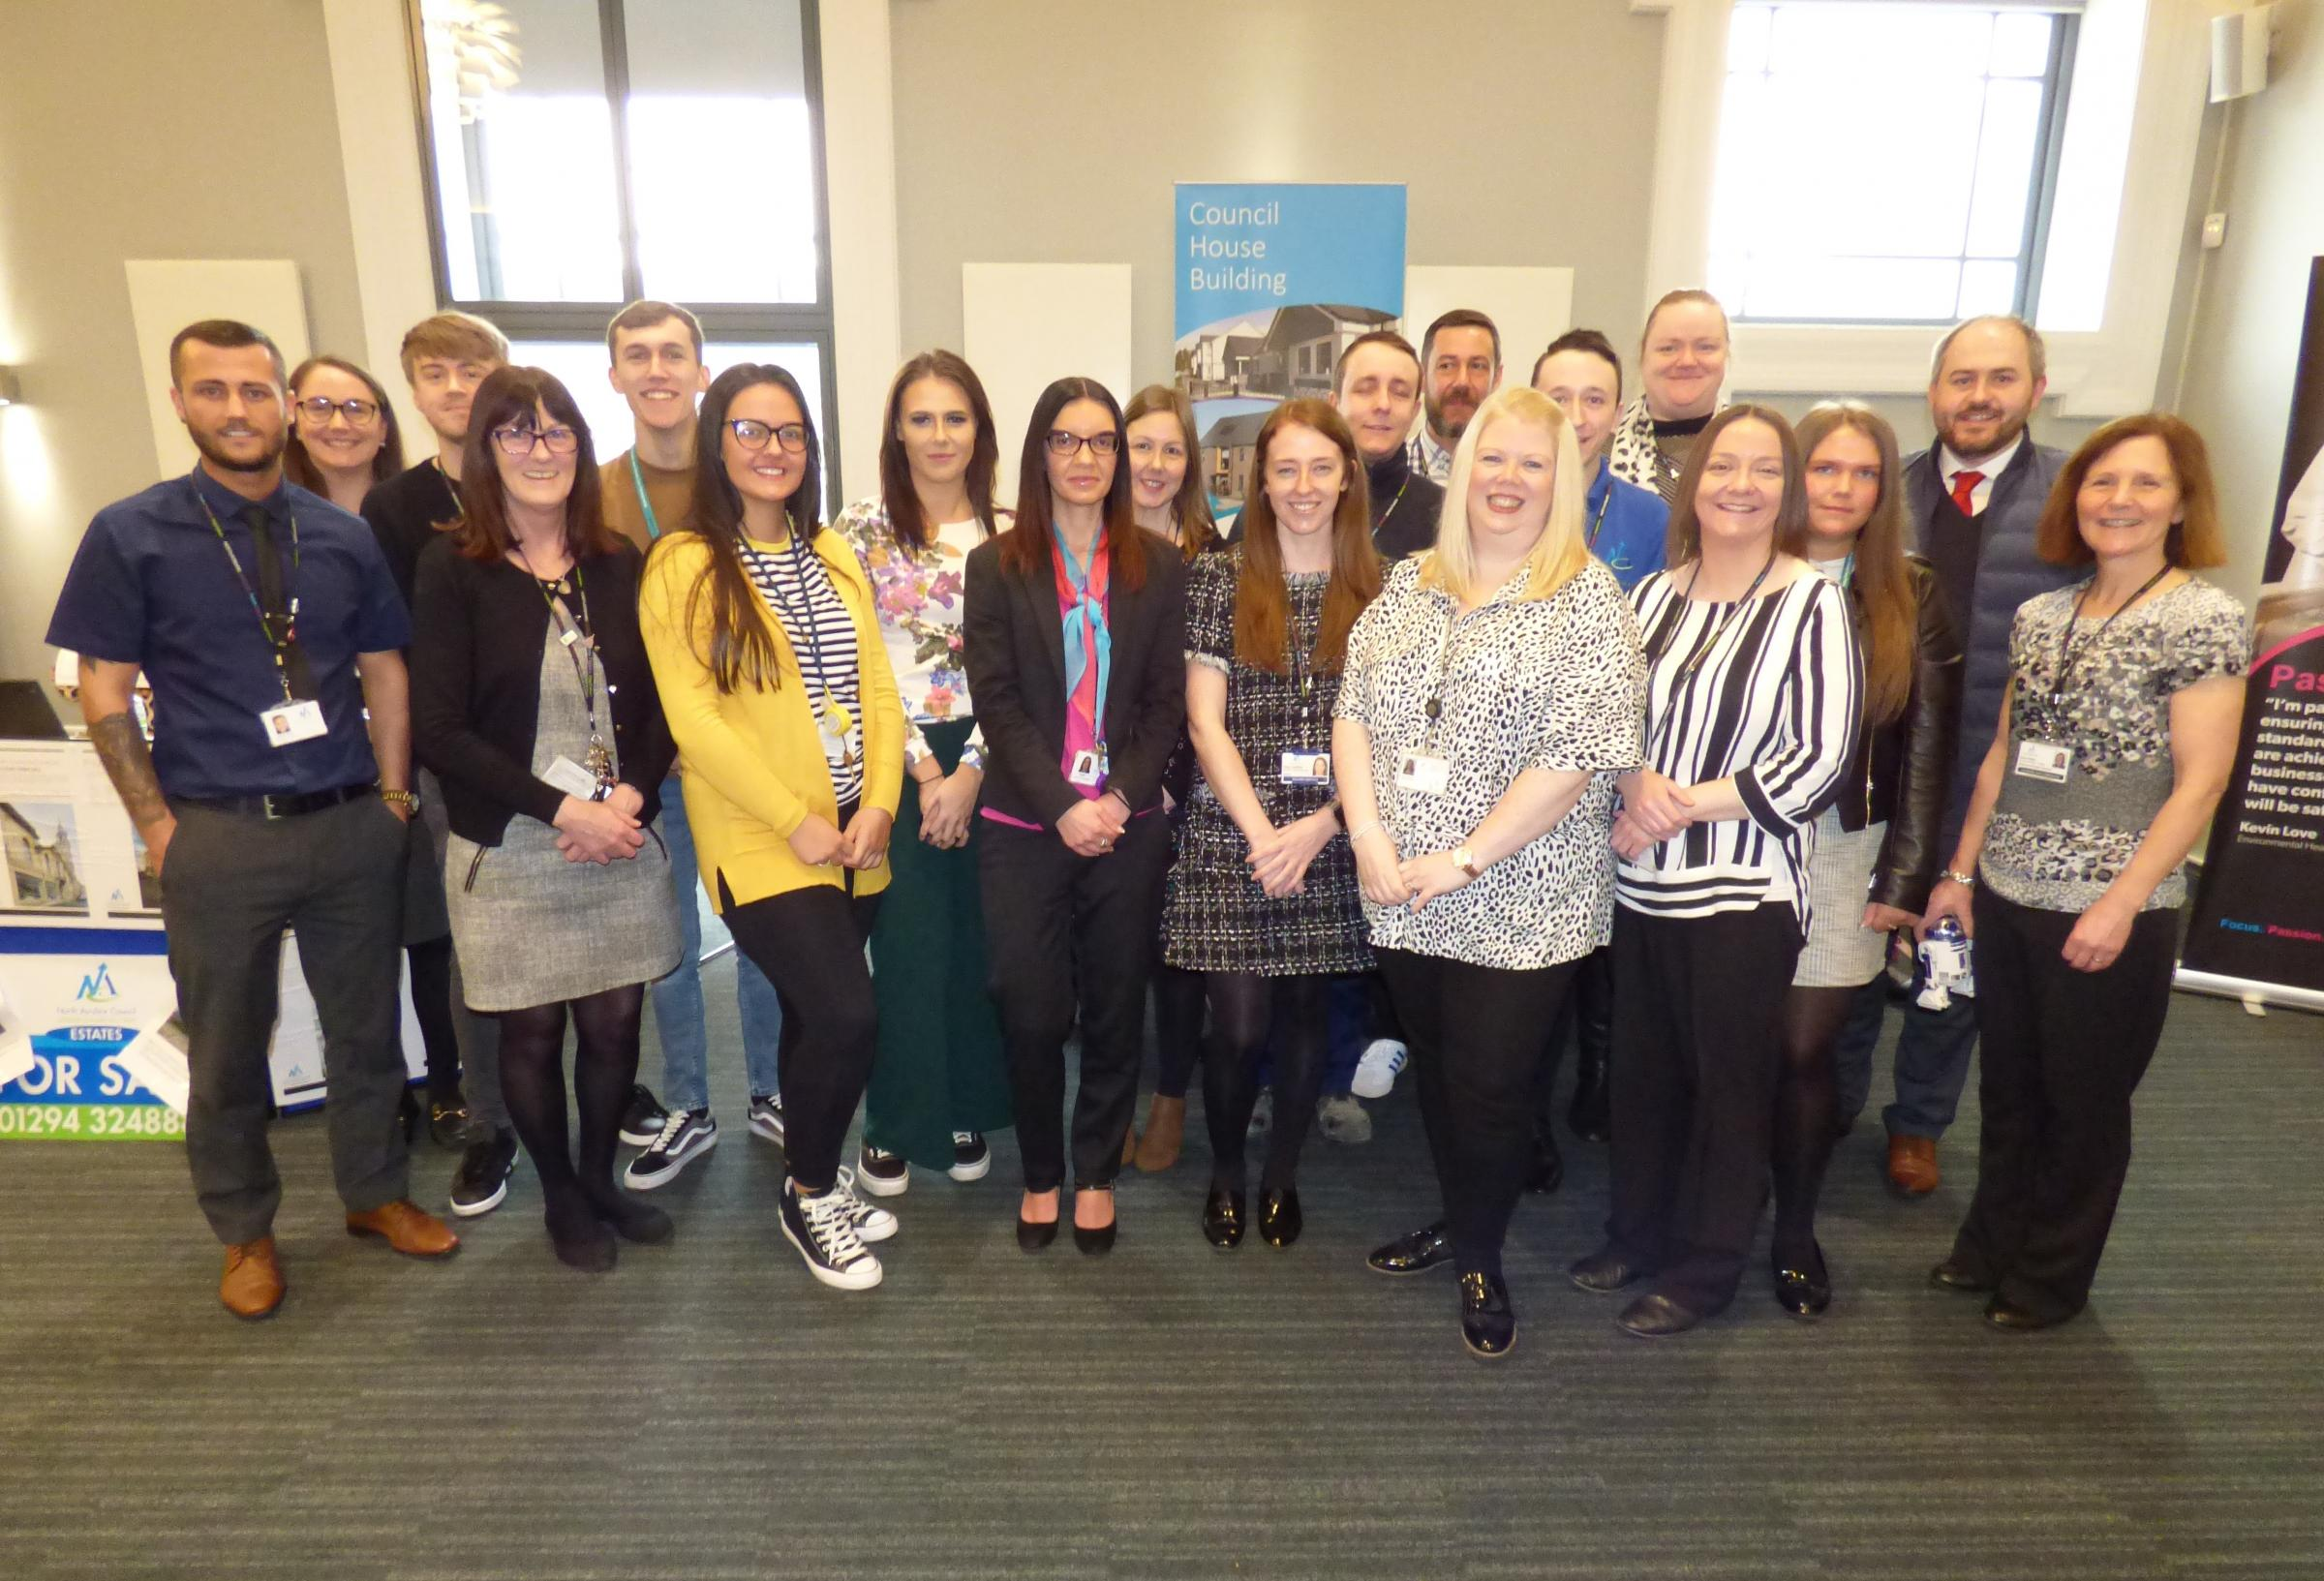 Success of Modern Apprentice event at Saltcoats Town Hall